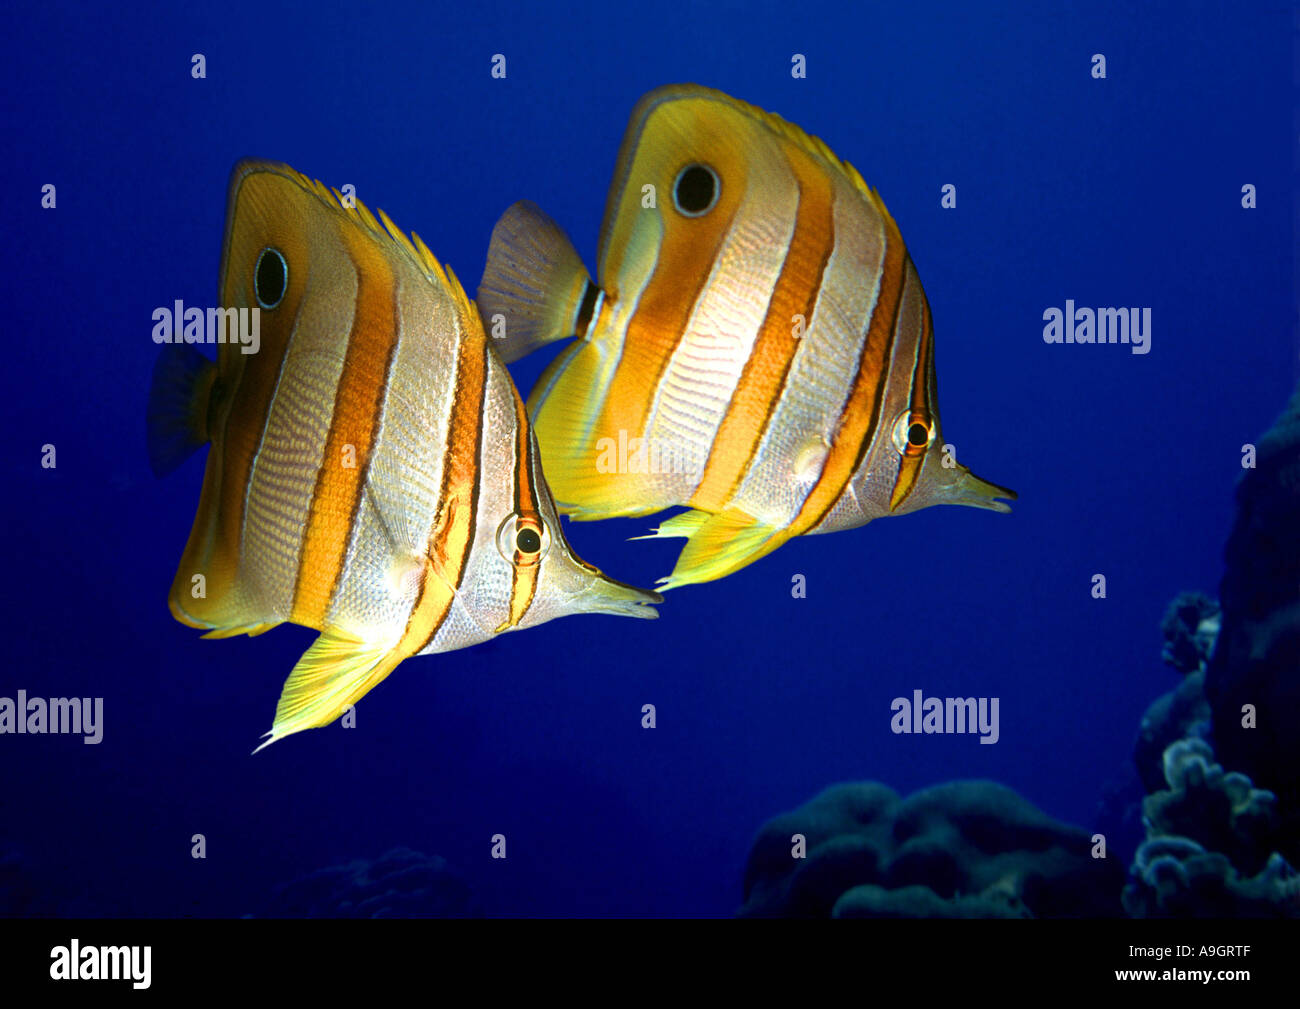 copper-banded butterflyfish, copperband butterflyfish, long-nosed butterflyfish, beaked coralfish (Chelmon rostratus), distribu - Stock Image